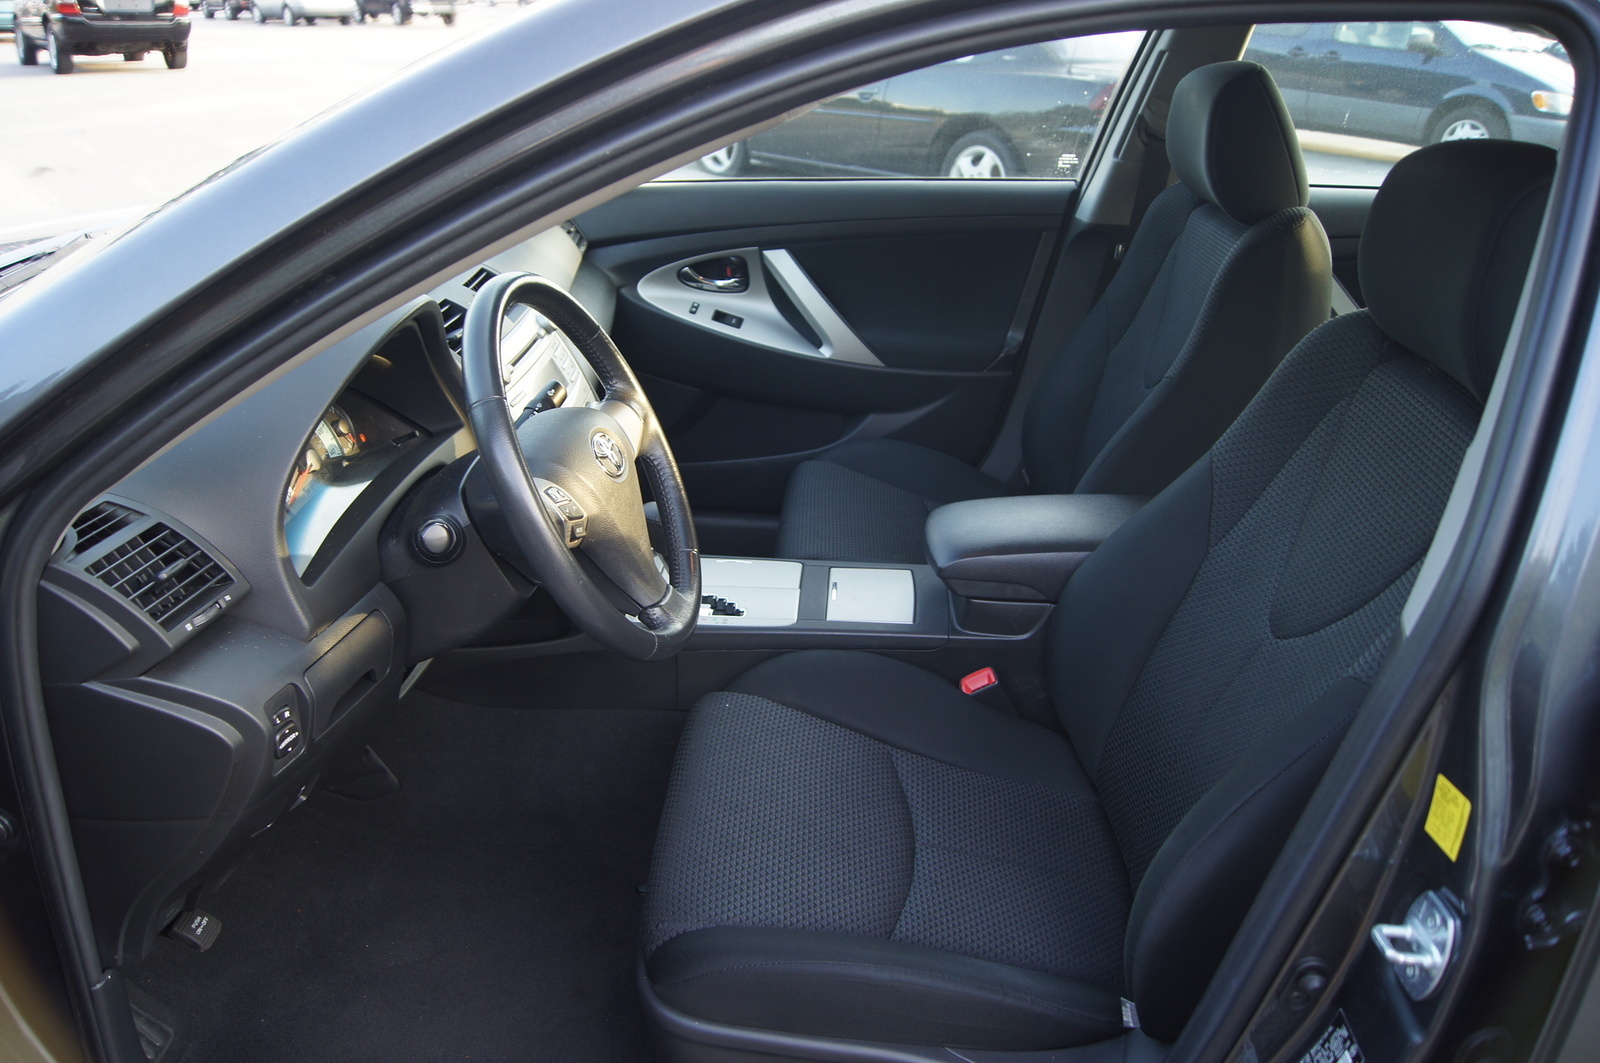 2011 Toyota Camry Se Specs >> 2011 Toyota Camry - Pictures - CarGurus